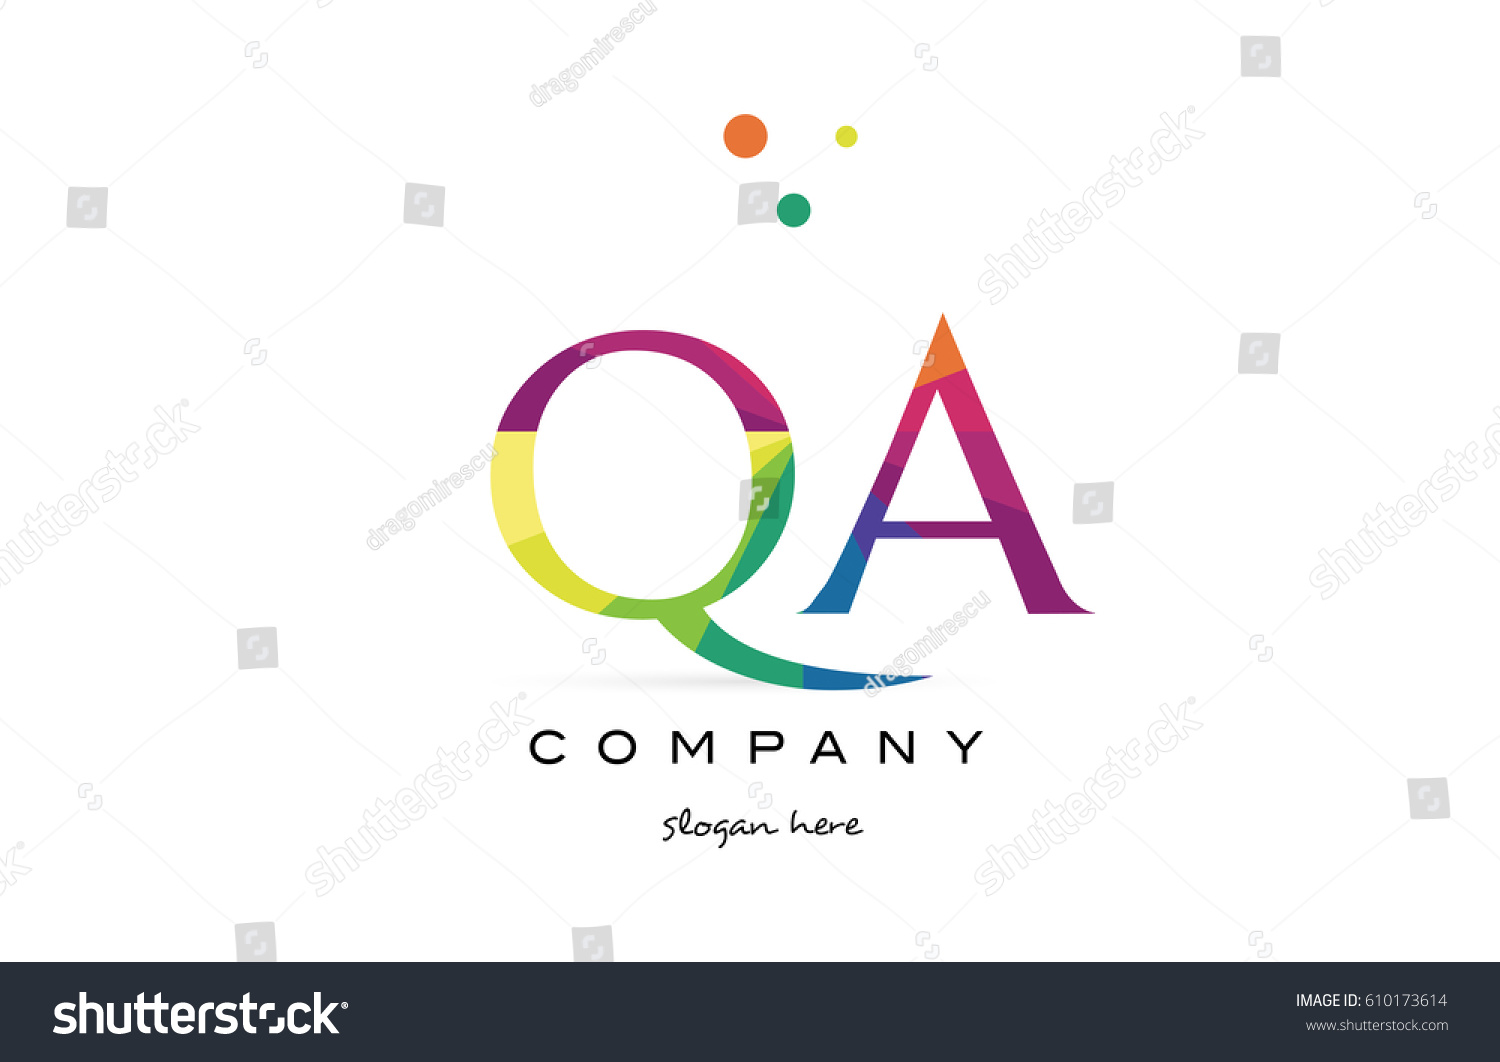 qa q a creative rainbow colors colored alphabet company letter logo design  vector icon template